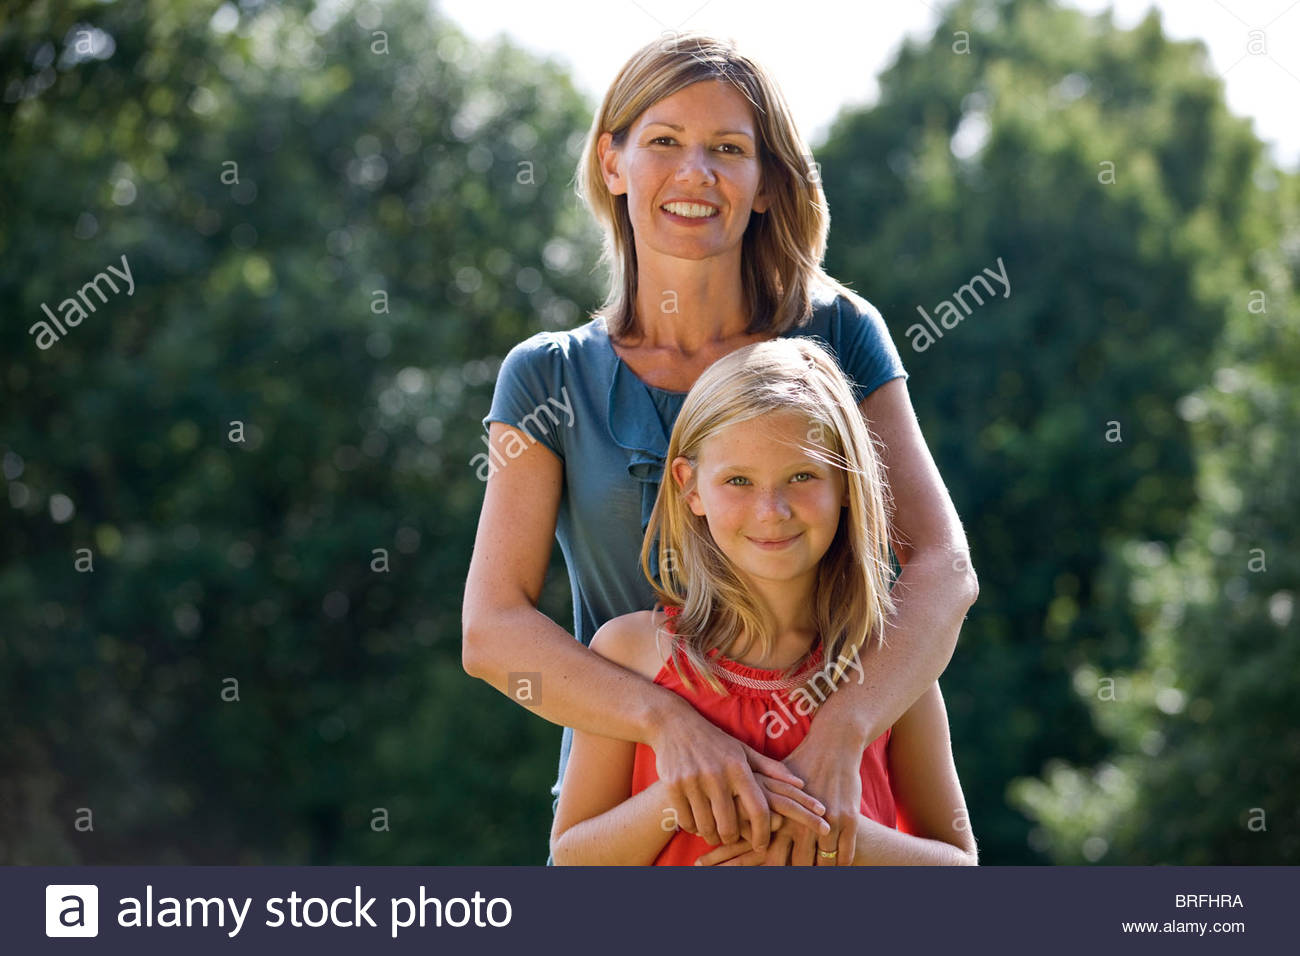 Portrait of a mother embracing her daughter - Stock Image